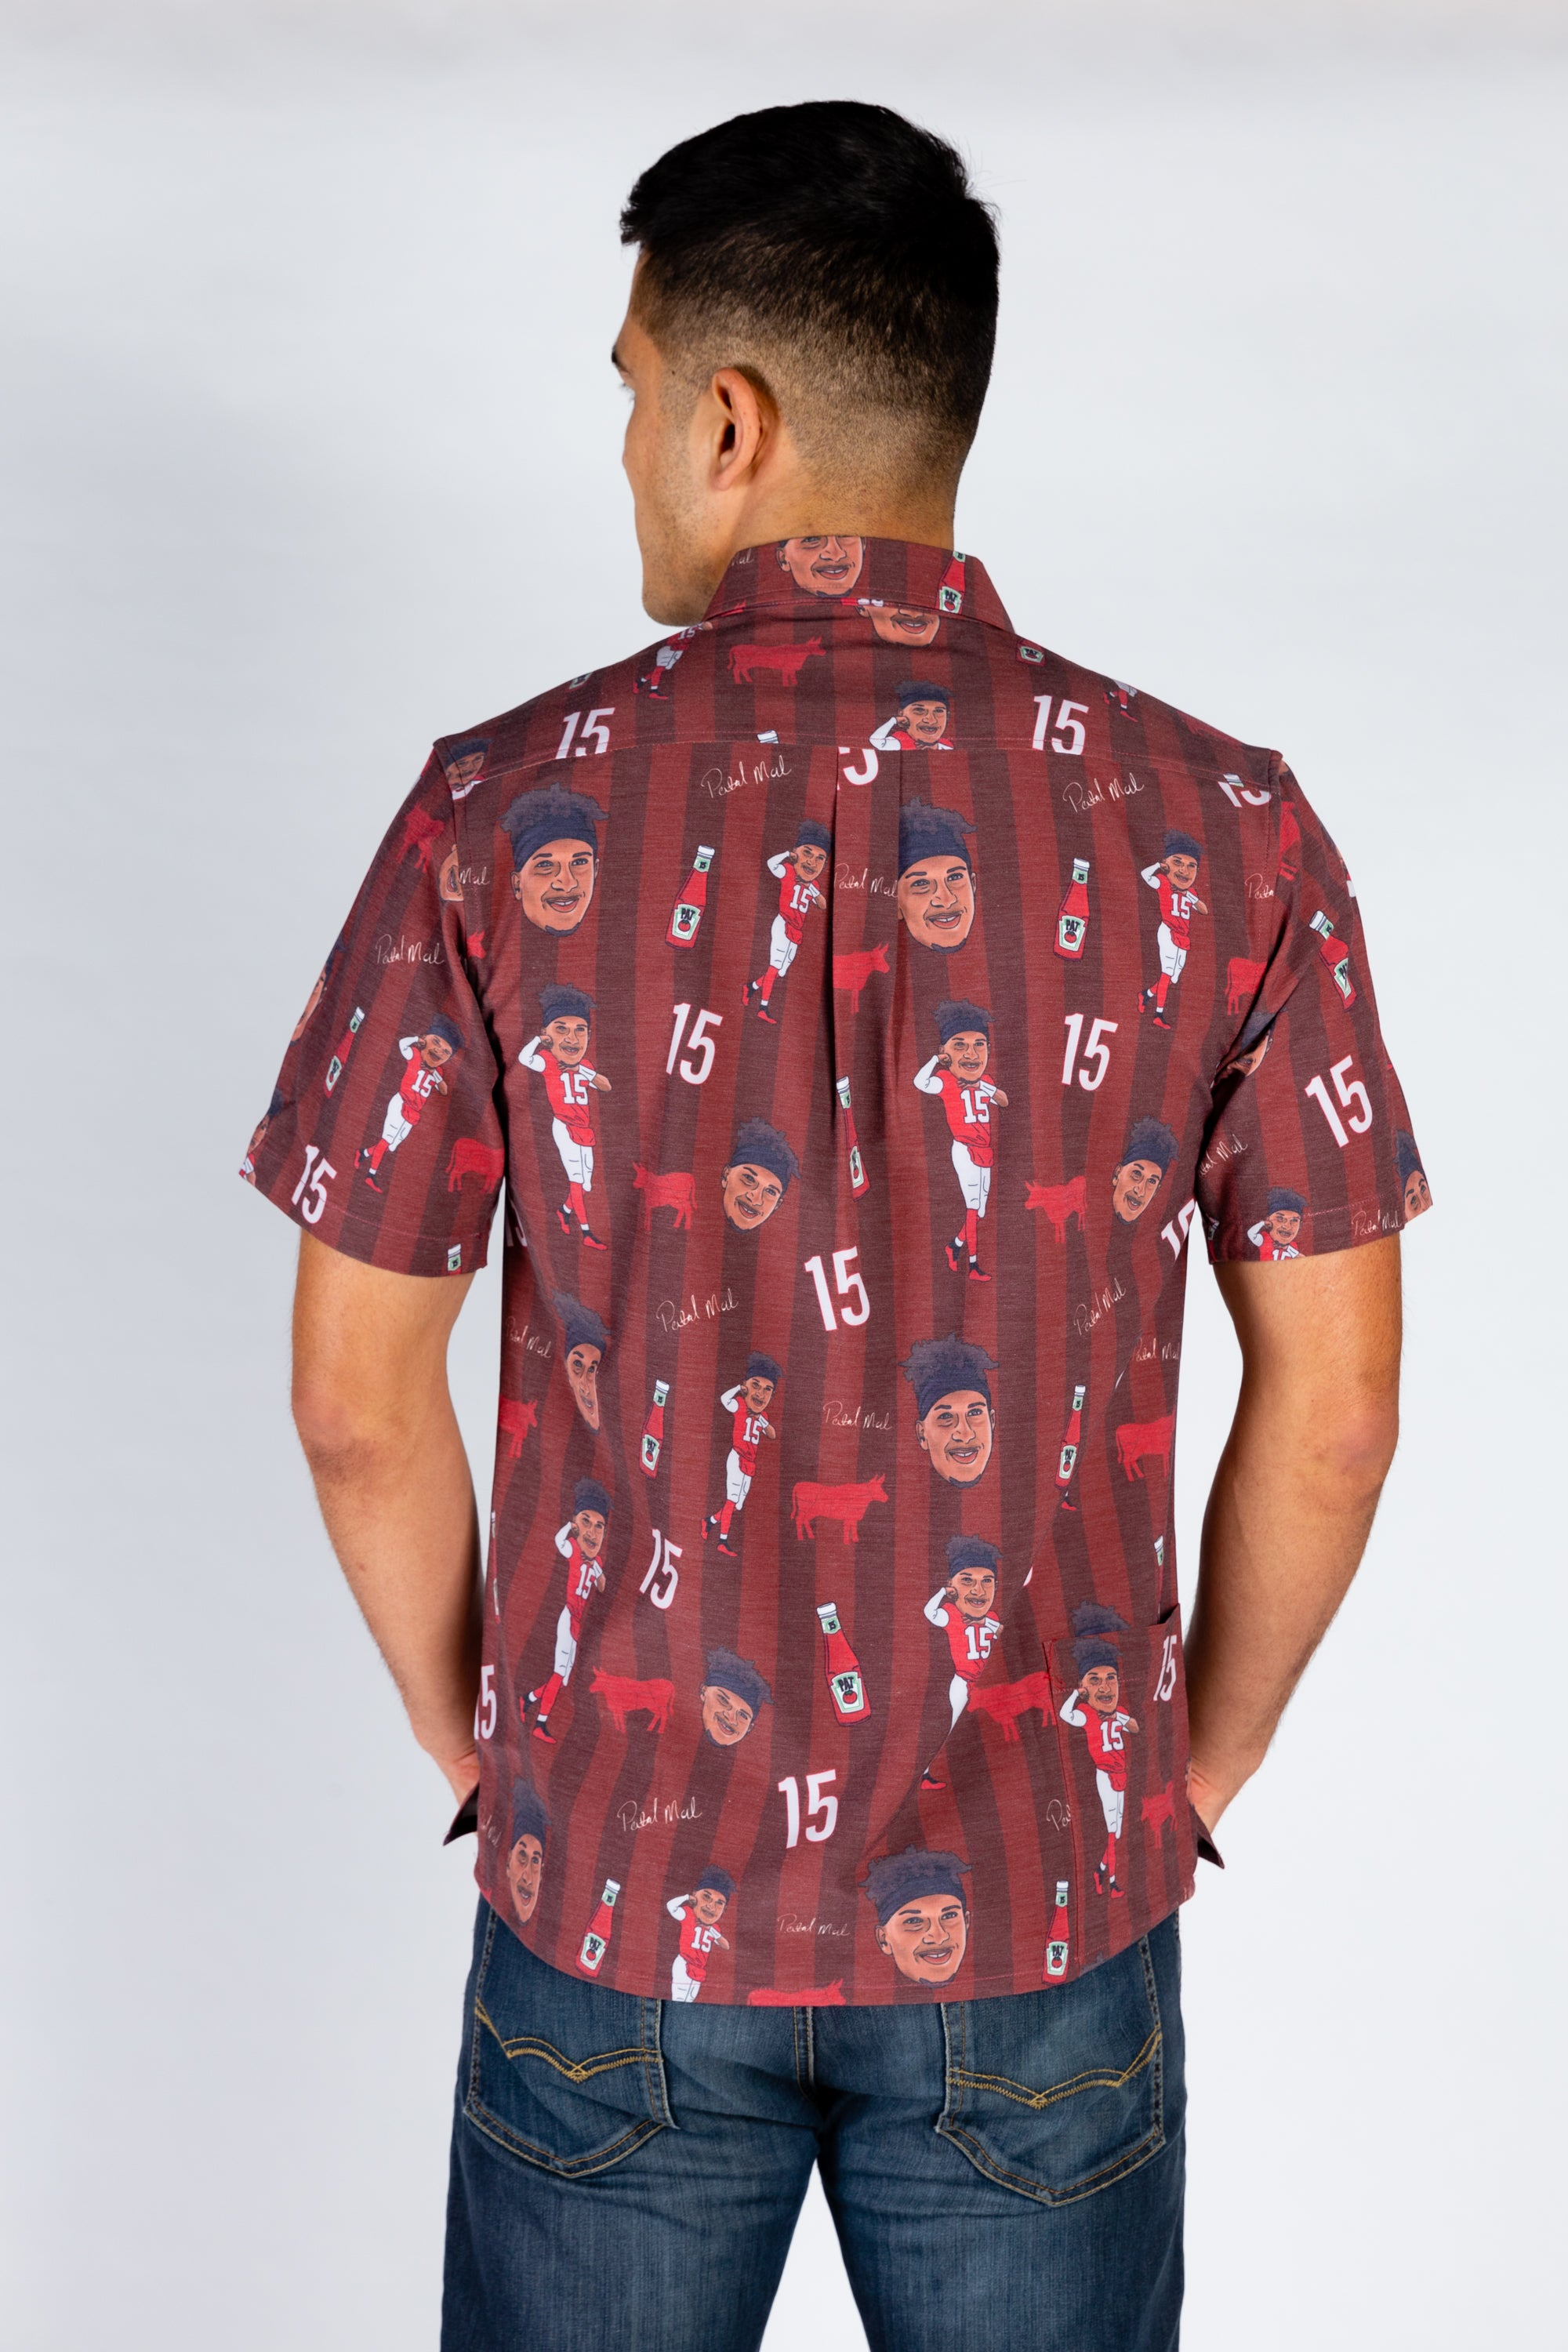 The Patrick Mahomes | Striped Hawaiian Shirt